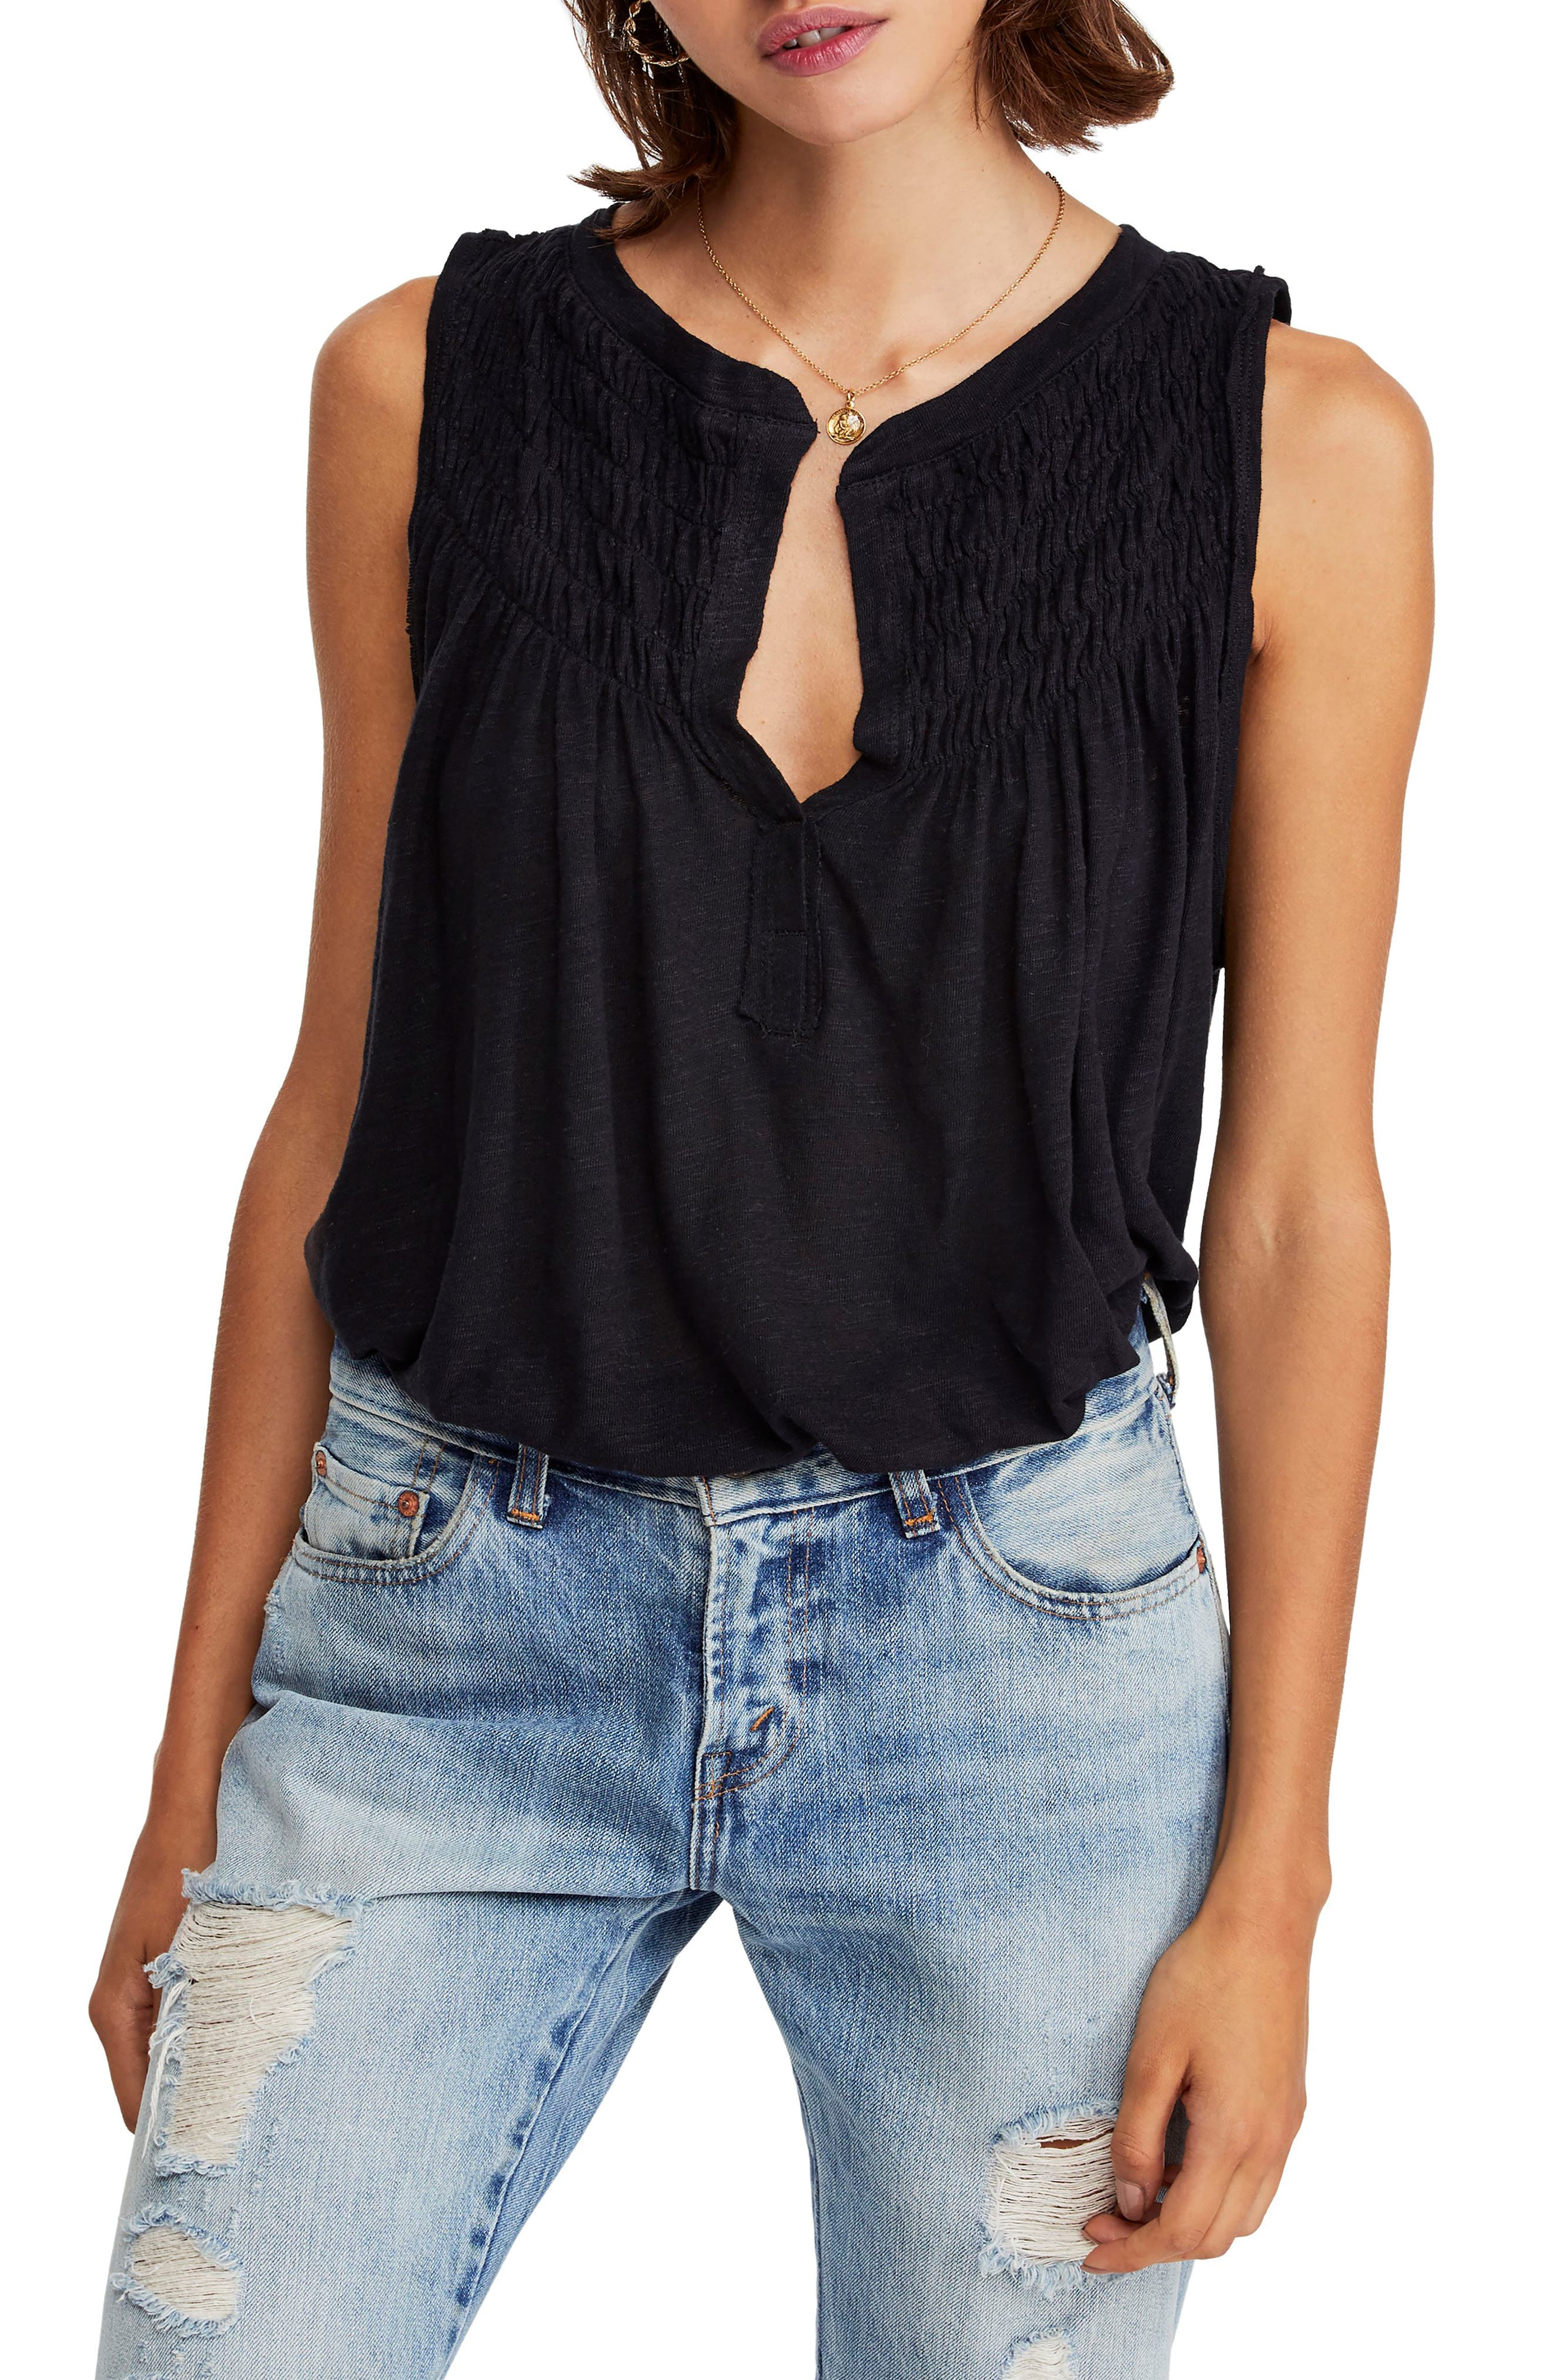 FREE PEOPLE, New to Town Tank, Main thumbnail 1, color, 001